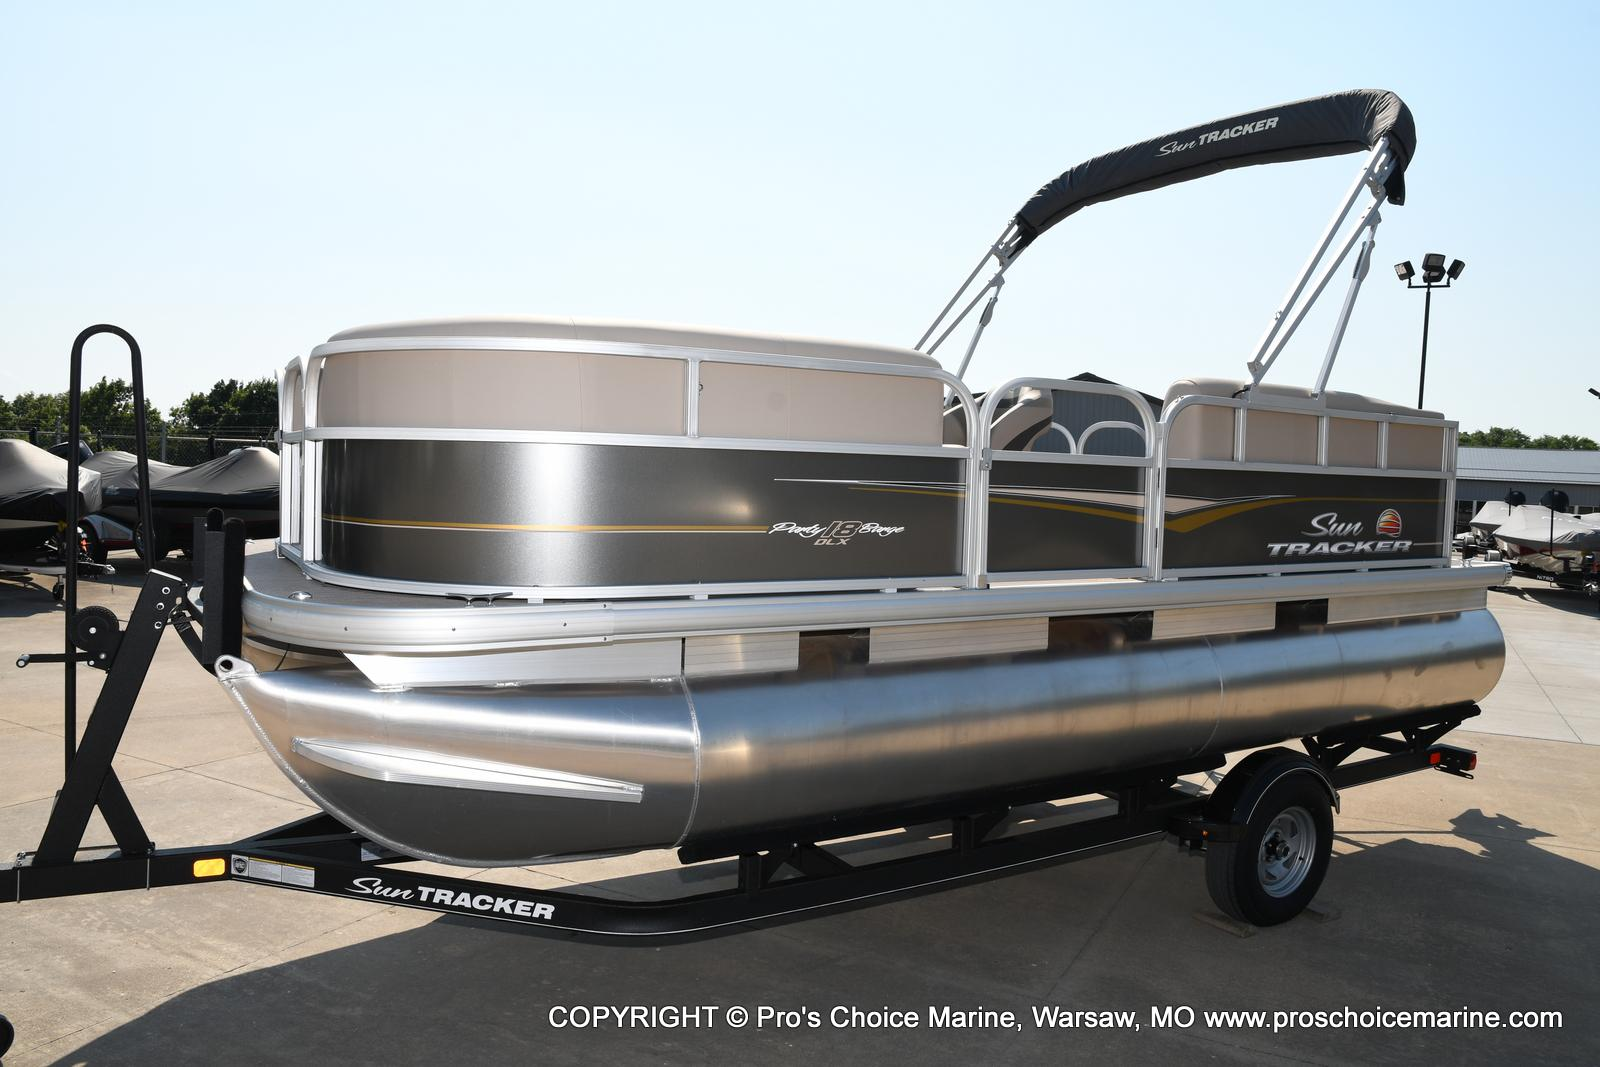 2021 Sun Tracker boat for sale, model of the boat is Party Barge 18 DLX & Image # 35 of 50